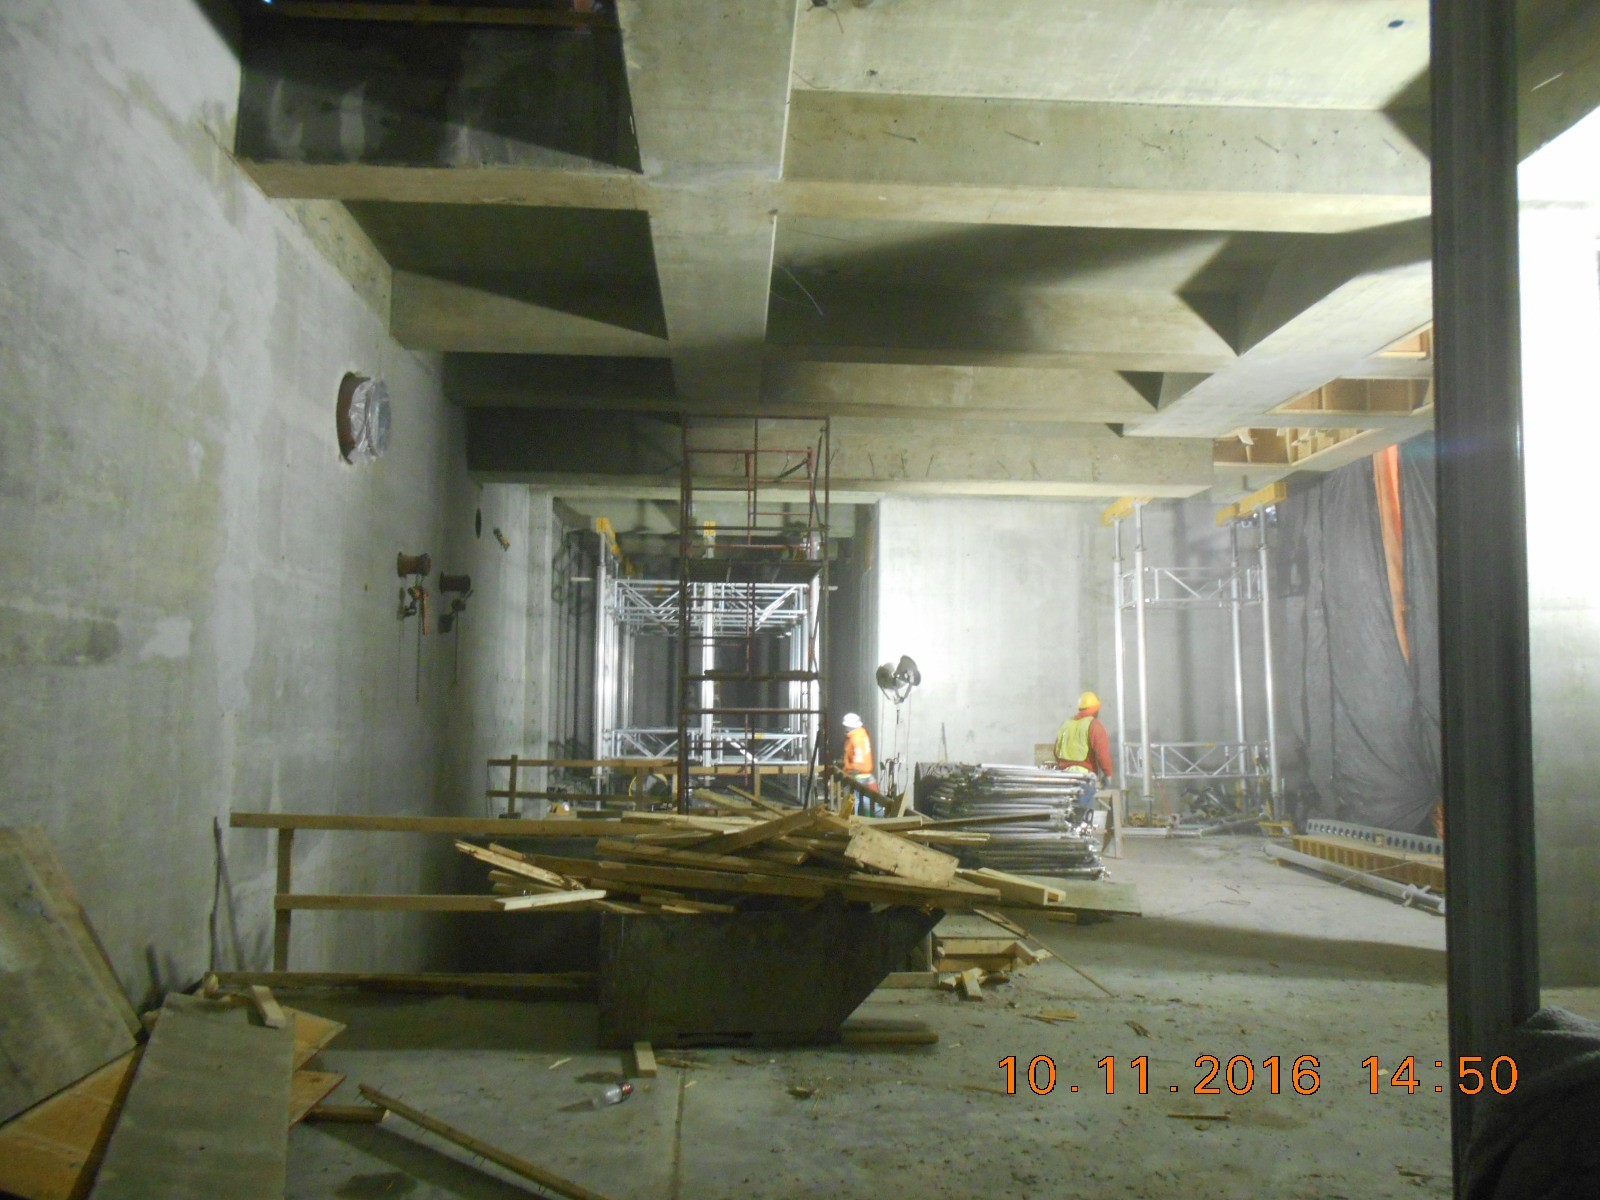 JTJ removing forms from the underside of the first floor slab and cleaning the Gallery area.